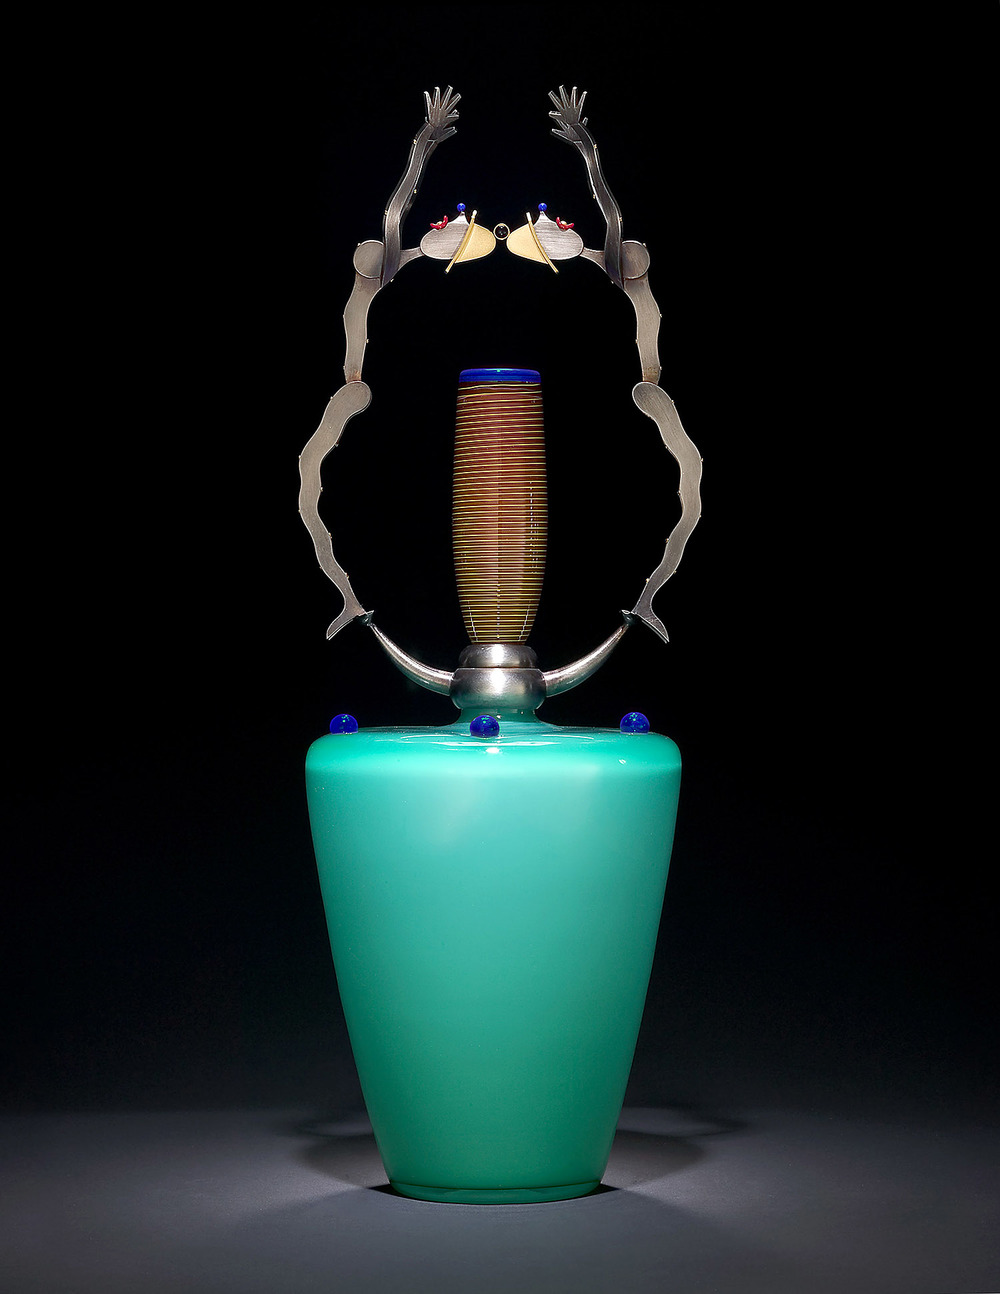 Feelers   2003. Blown glass, nickel and gold-plated bronze, Vitrolite. 22 x 8 x 8""